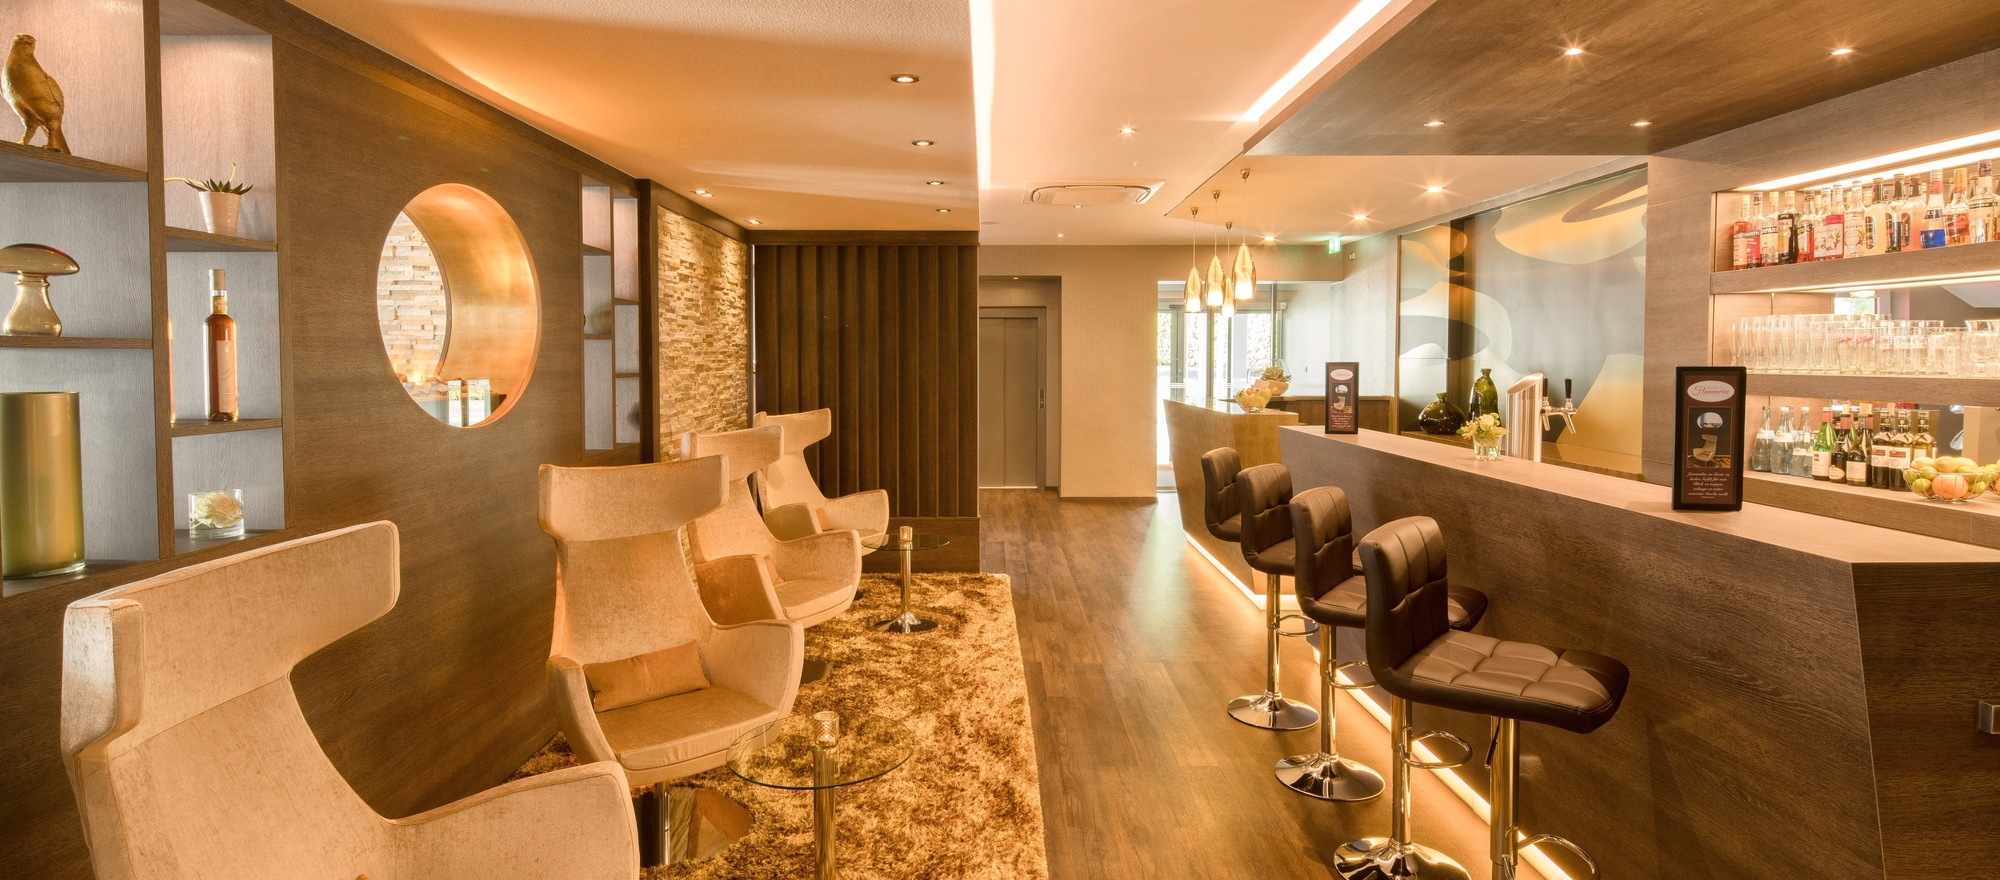 Relax at the bar or lounge area in the 3-star-superior hotel Ringhotel Reubel in Nuremberg-Zirndorf